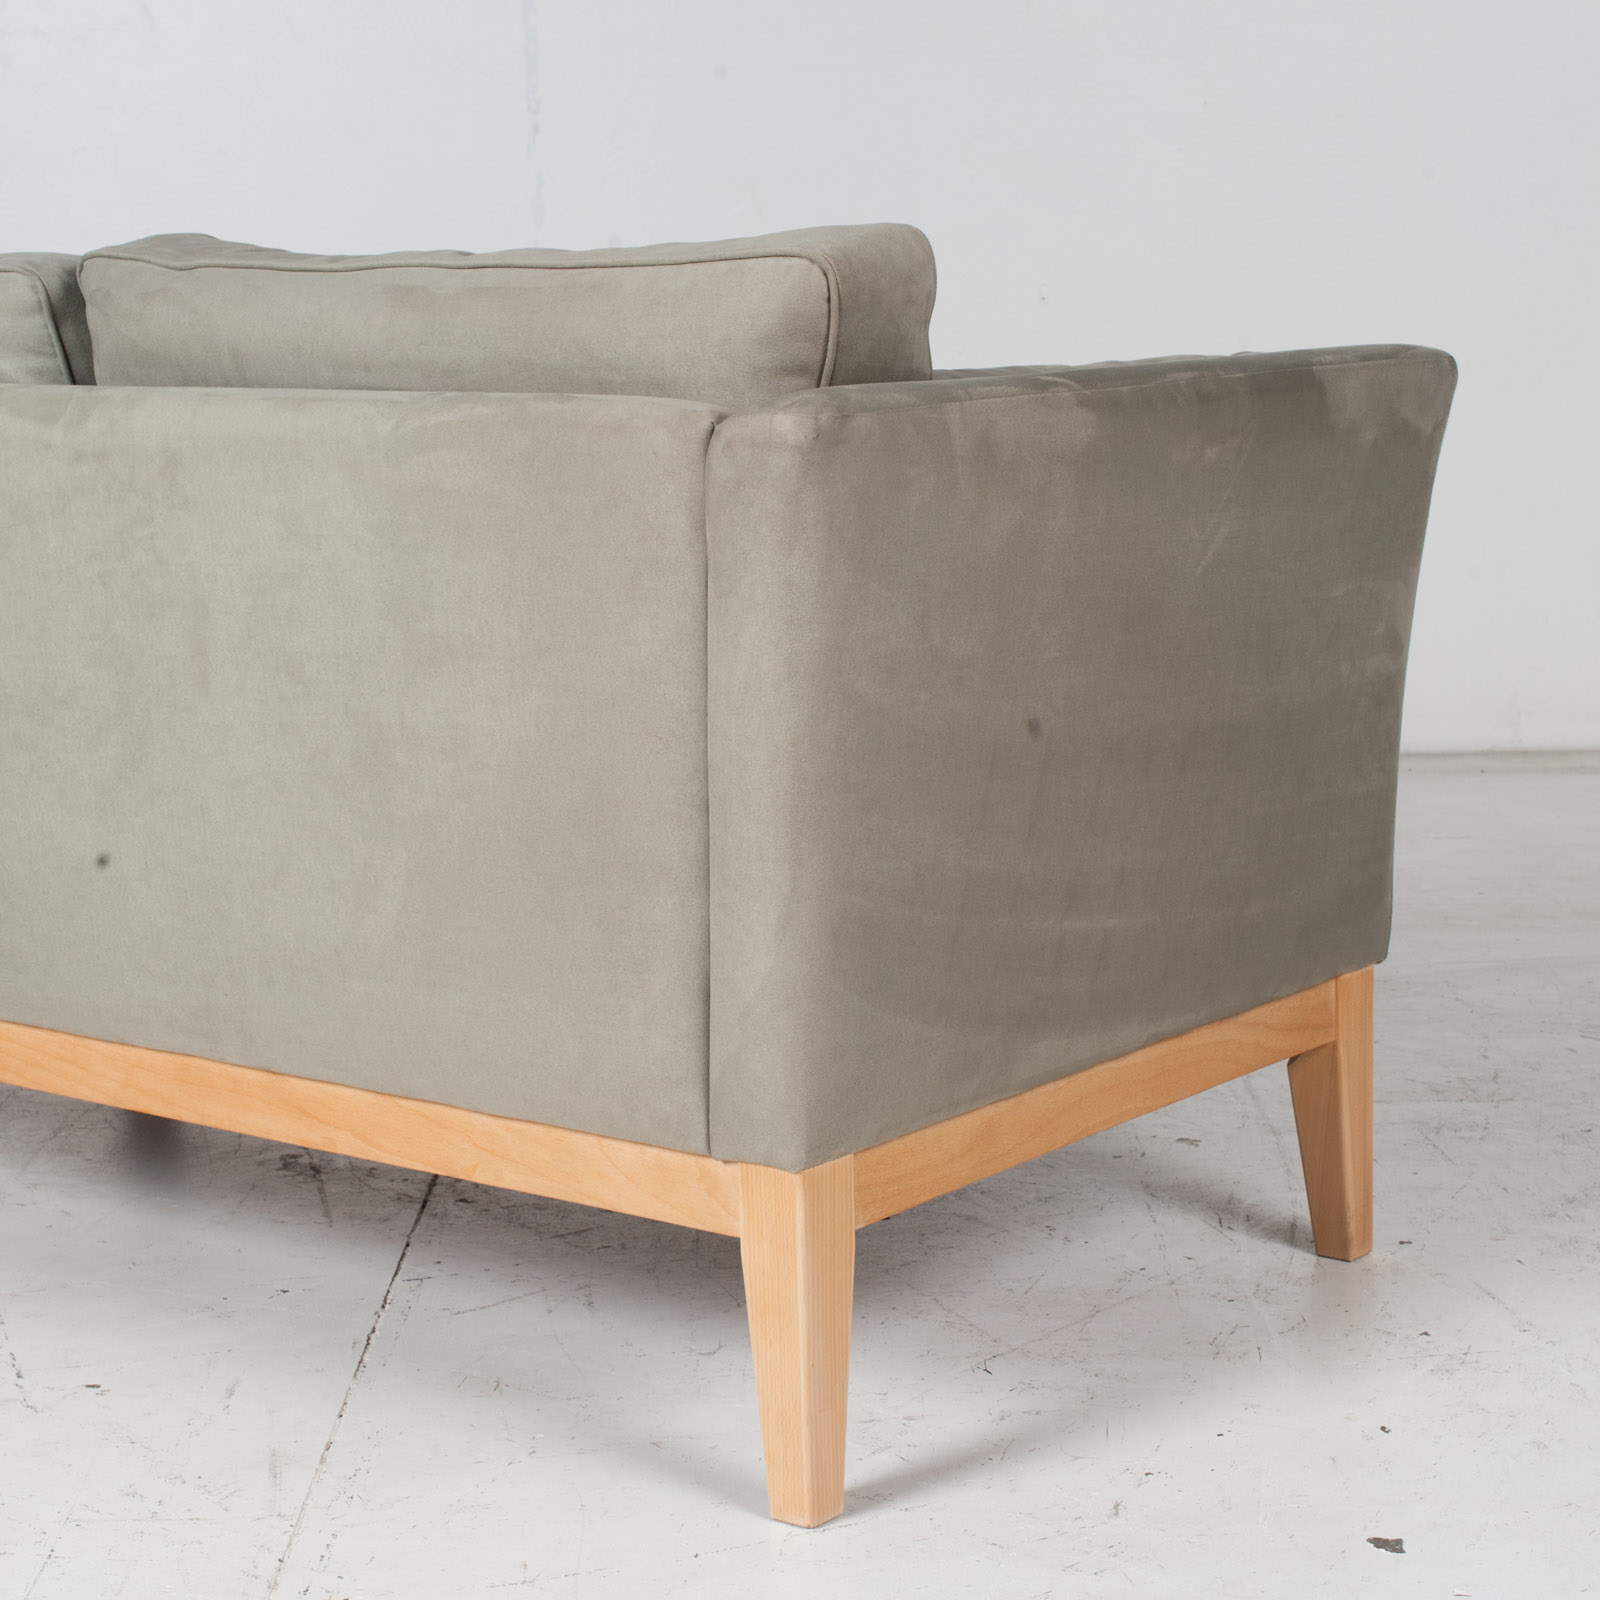 2 Seat Sofa By Stouby In Grey Macro Suede, 1960s, Denmark8